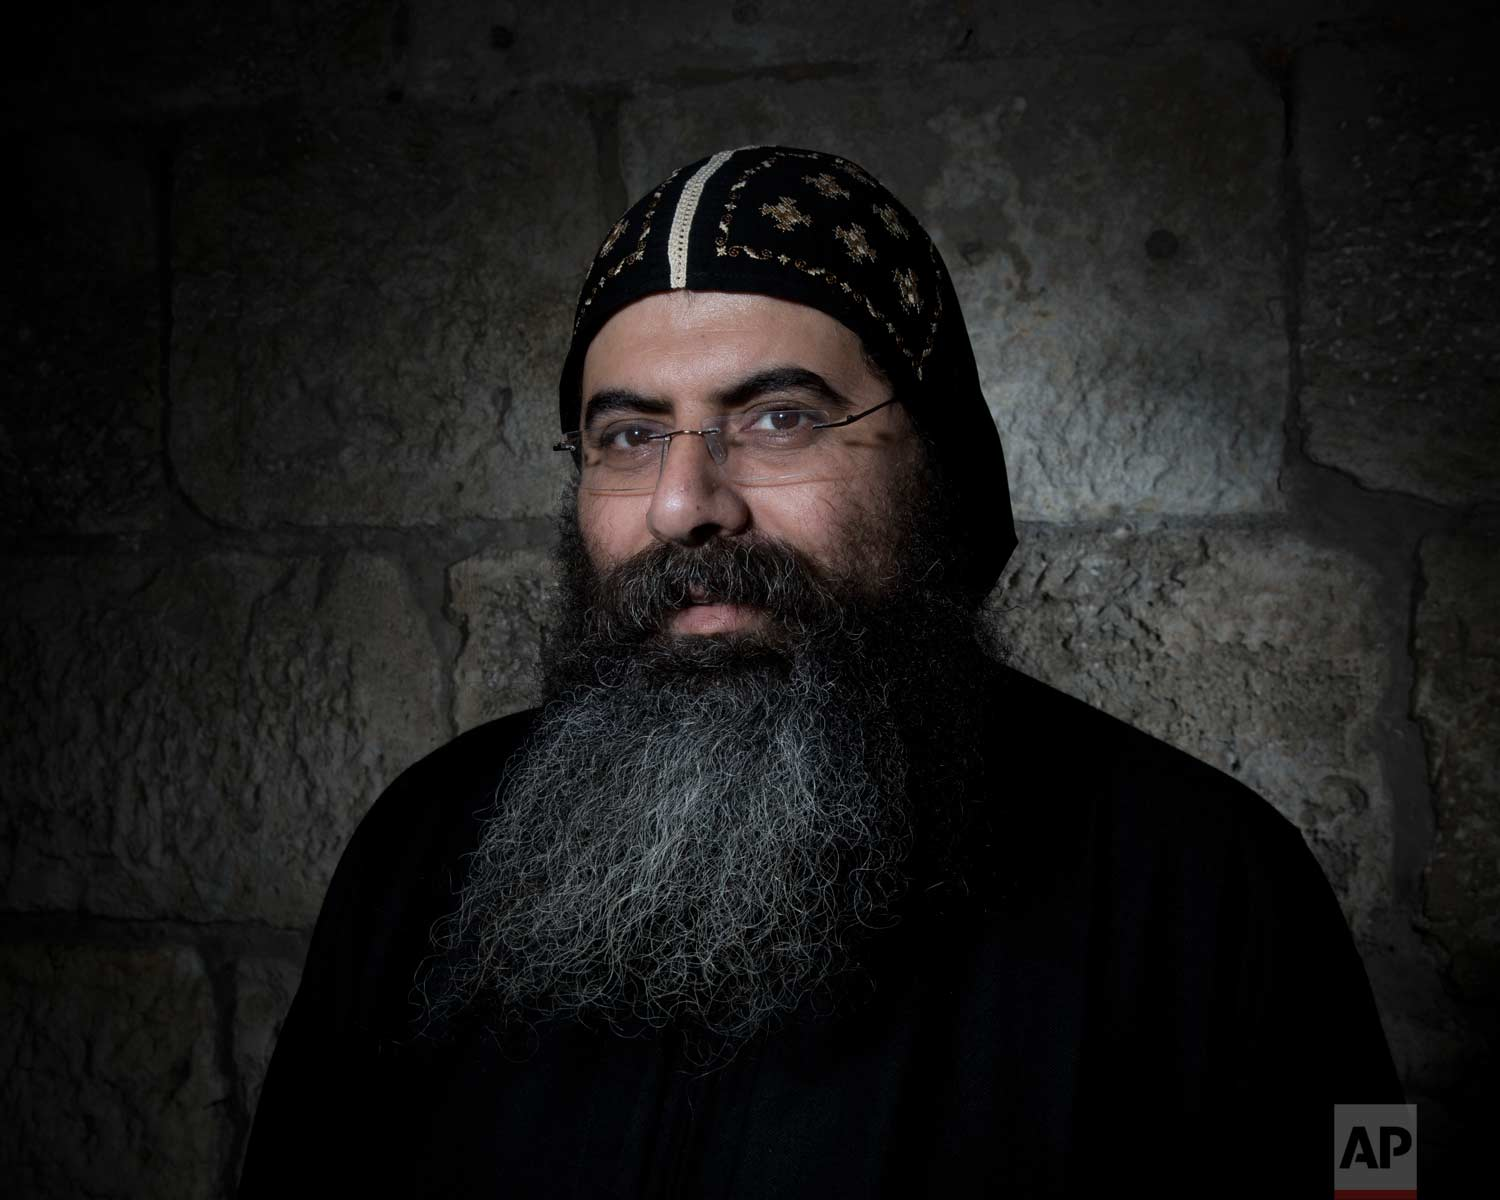 In this Sunday, Feb. 11, 2018 photo, Antonius Orshalimy, Secretary of the Coptic Orthodox Church in Jerusalem poses for a portrait in Jerusalem's Old City. (AP Photo/Oded Balilty)